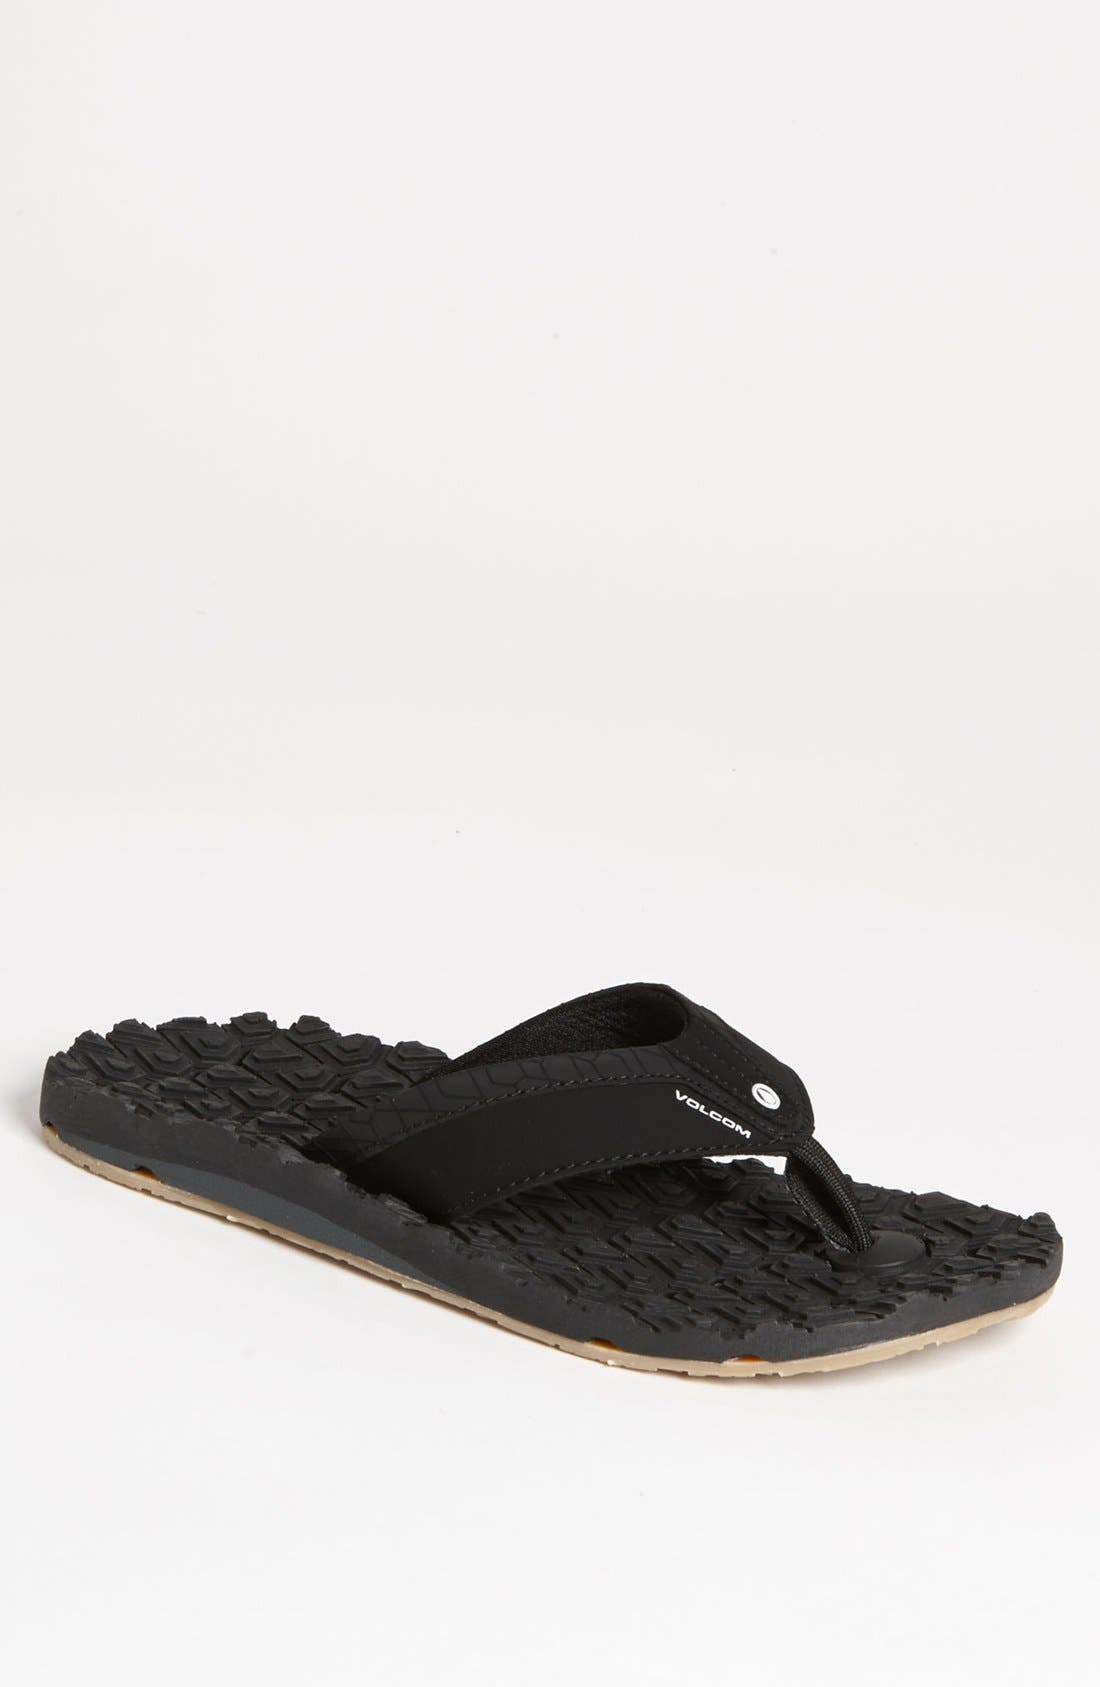 Main Image - Volcom 'Creedlers - Modtech Drain' Flip Flop